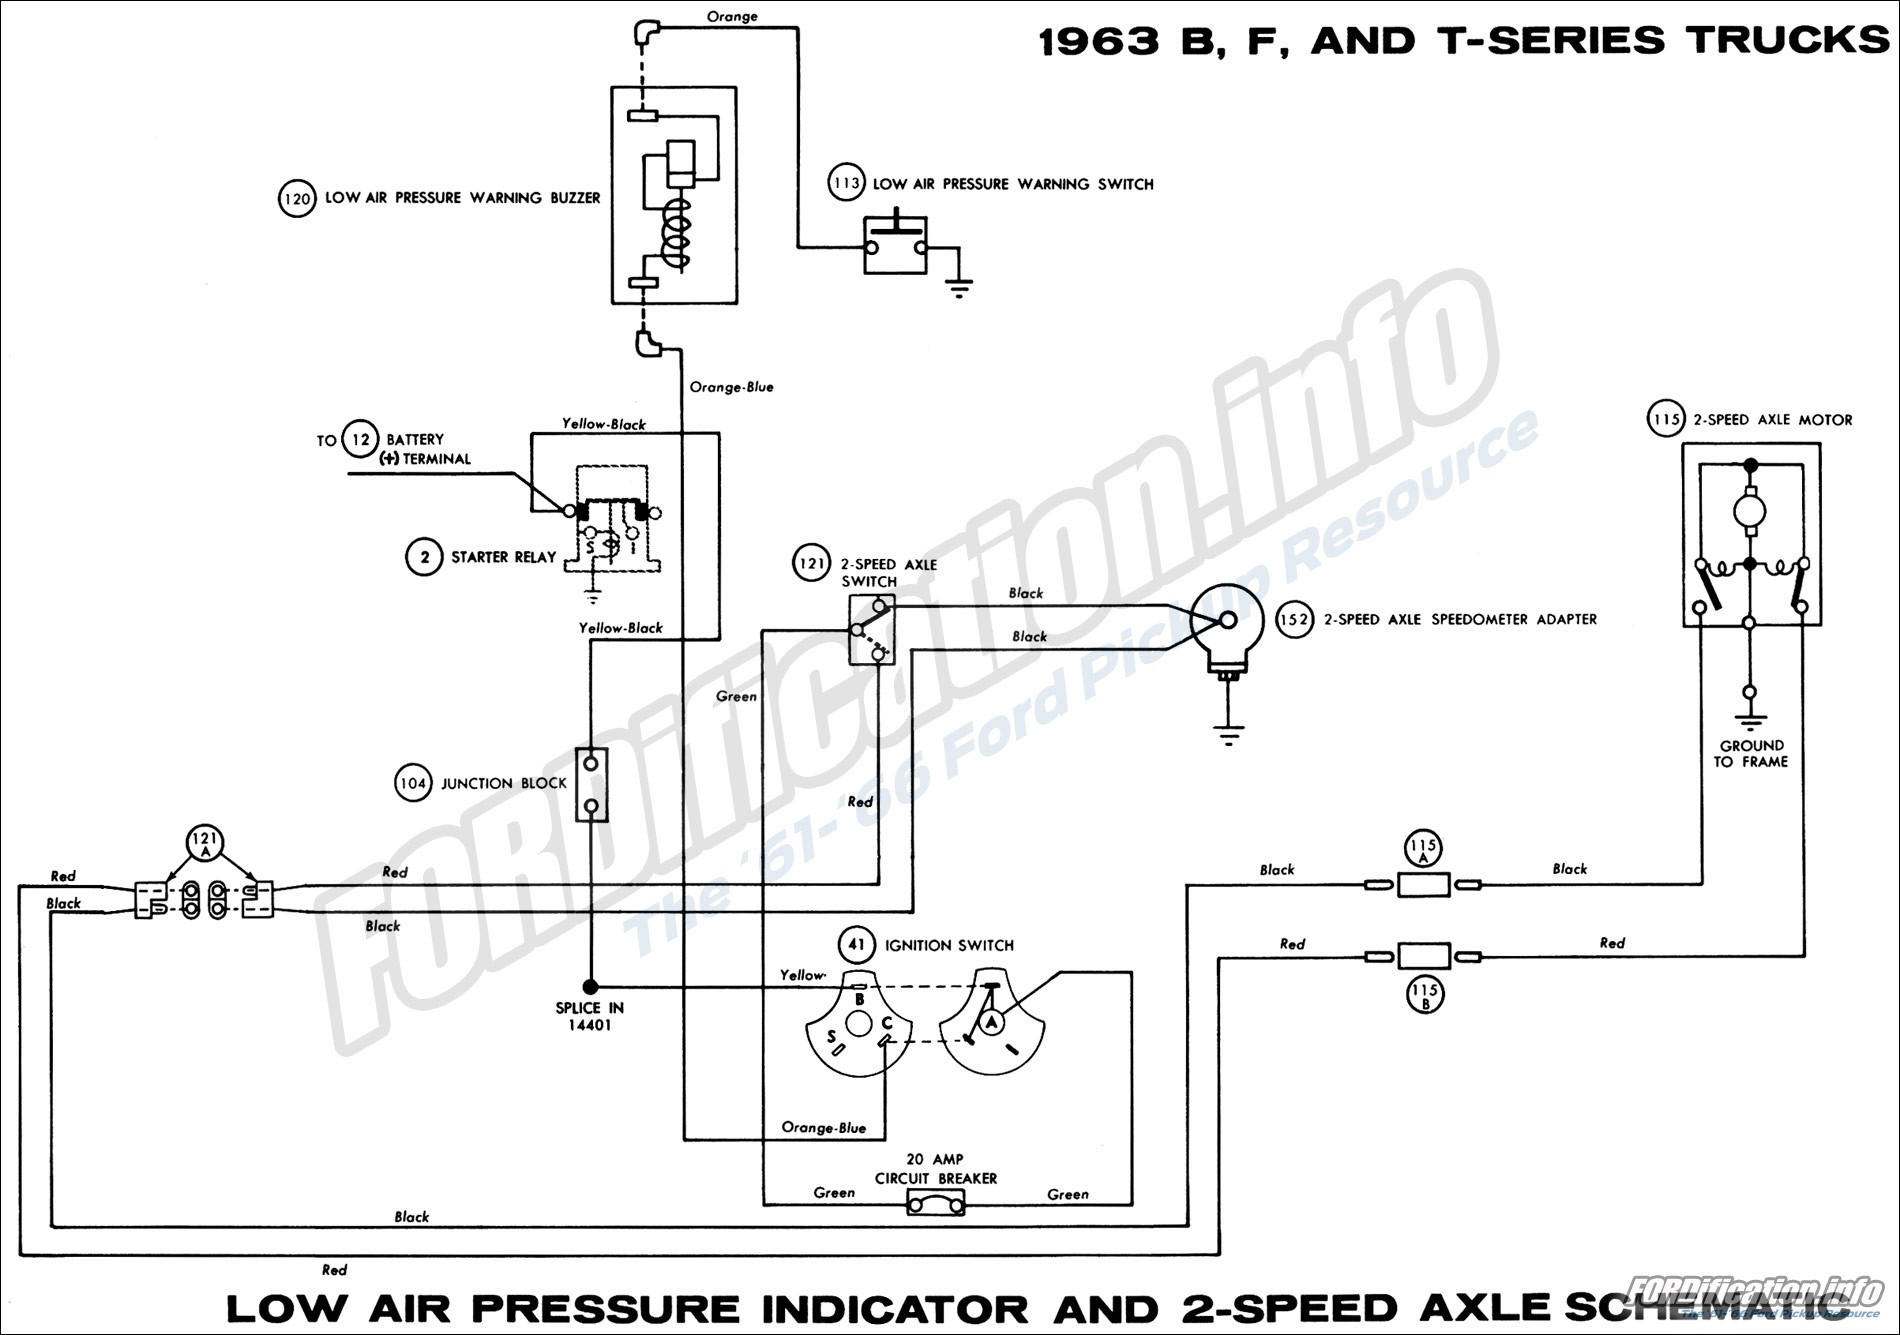 1963 B F and T series Trucks Low Air Pressure Indicator and 2 Speed Axle Schematic